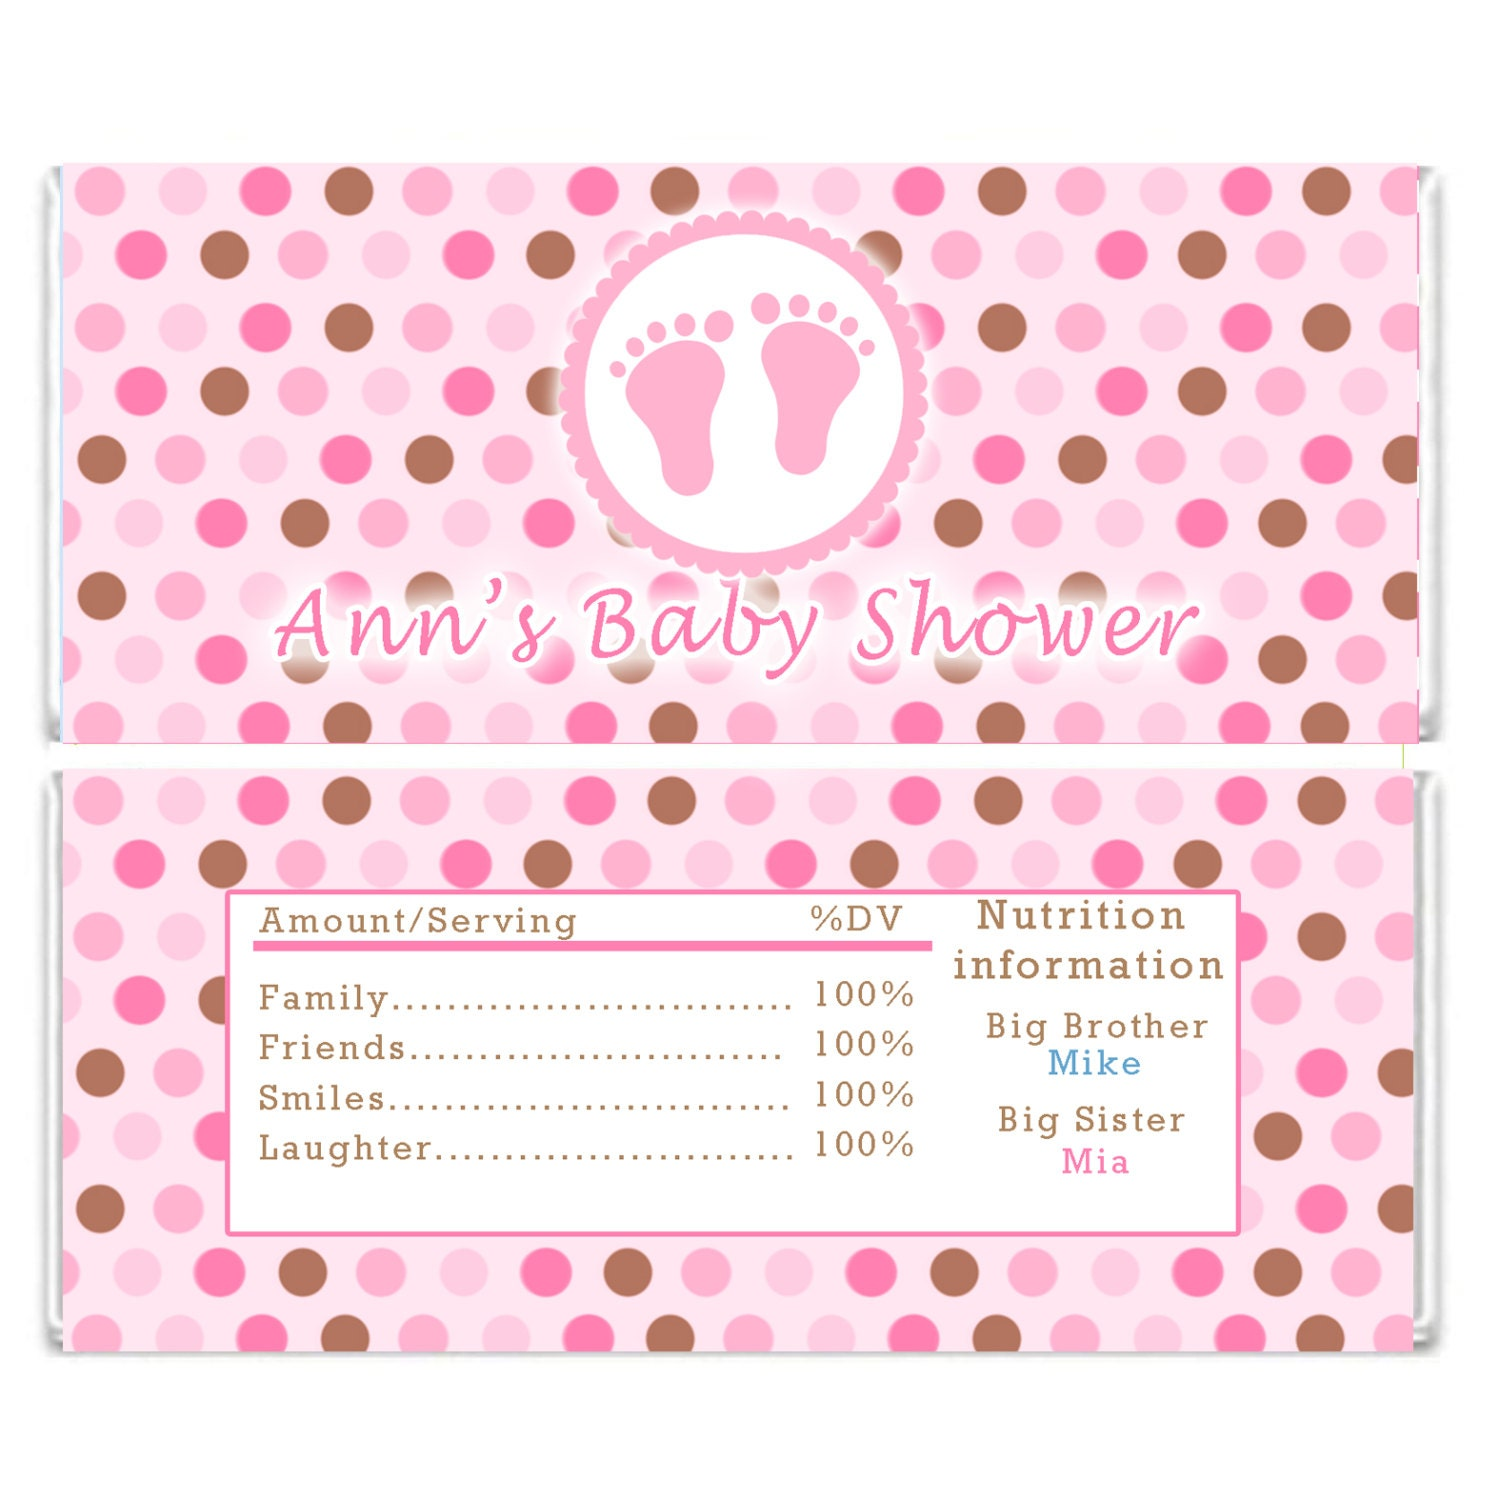 Pin free printable candy bar wrappers for baby shower on for Candy bar wrappers template for baby shower printable free